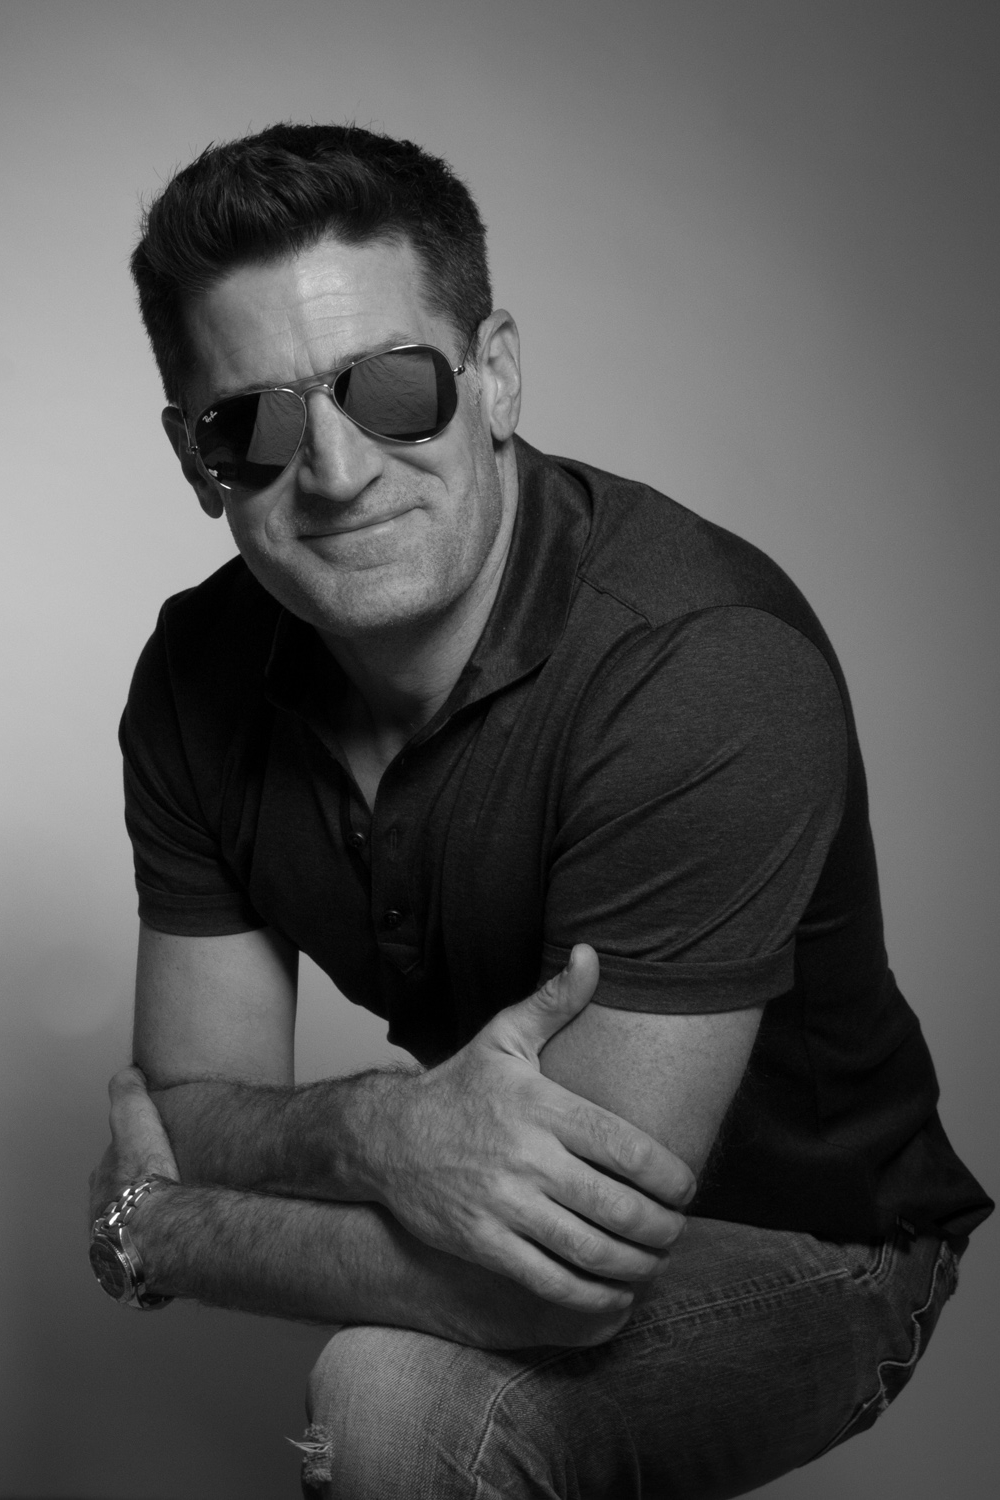 black and white portrait of a fun loving entrepreneur in aviator glasses